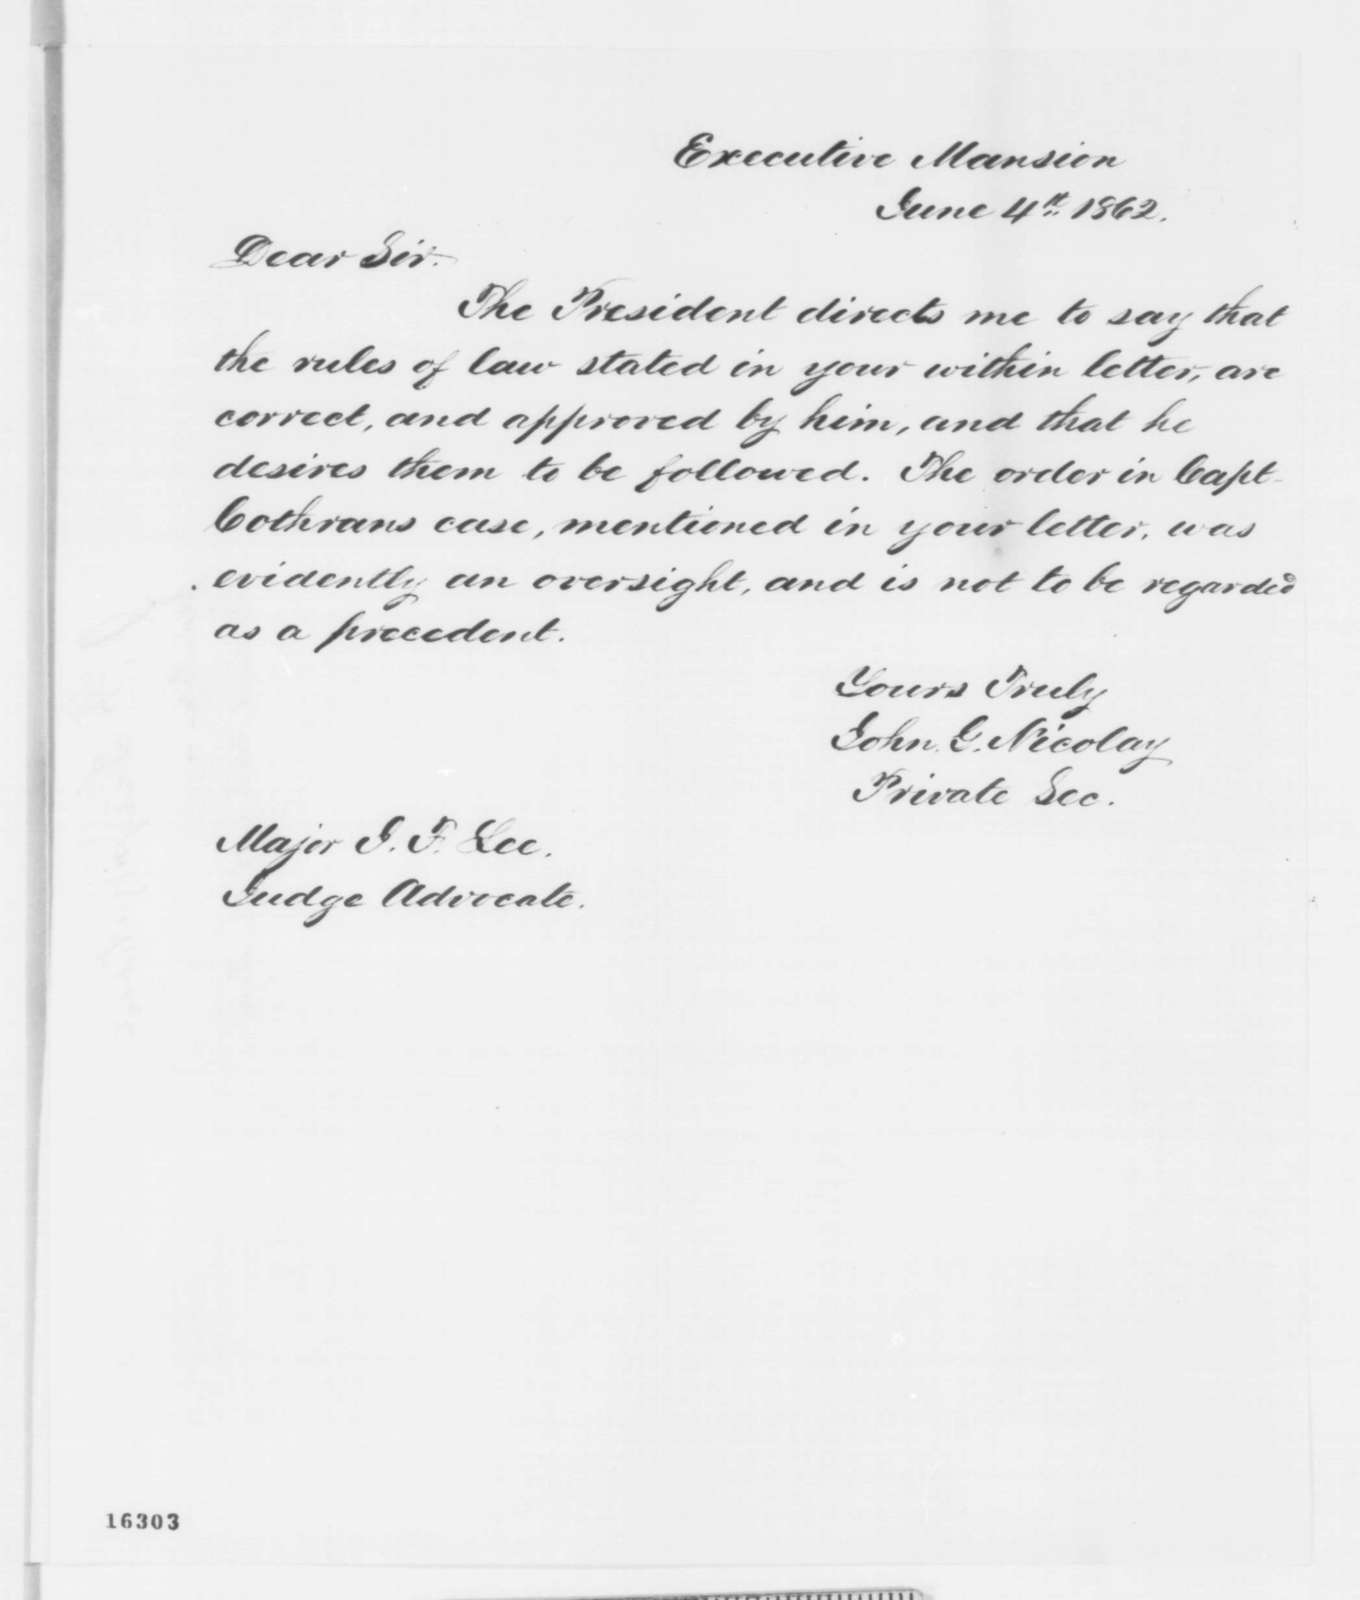 John Fitzgerald Lee to John G. Nicolay, Wednesday, June 04, 1862  (Courts martial; with Nicolay's response to Lee)